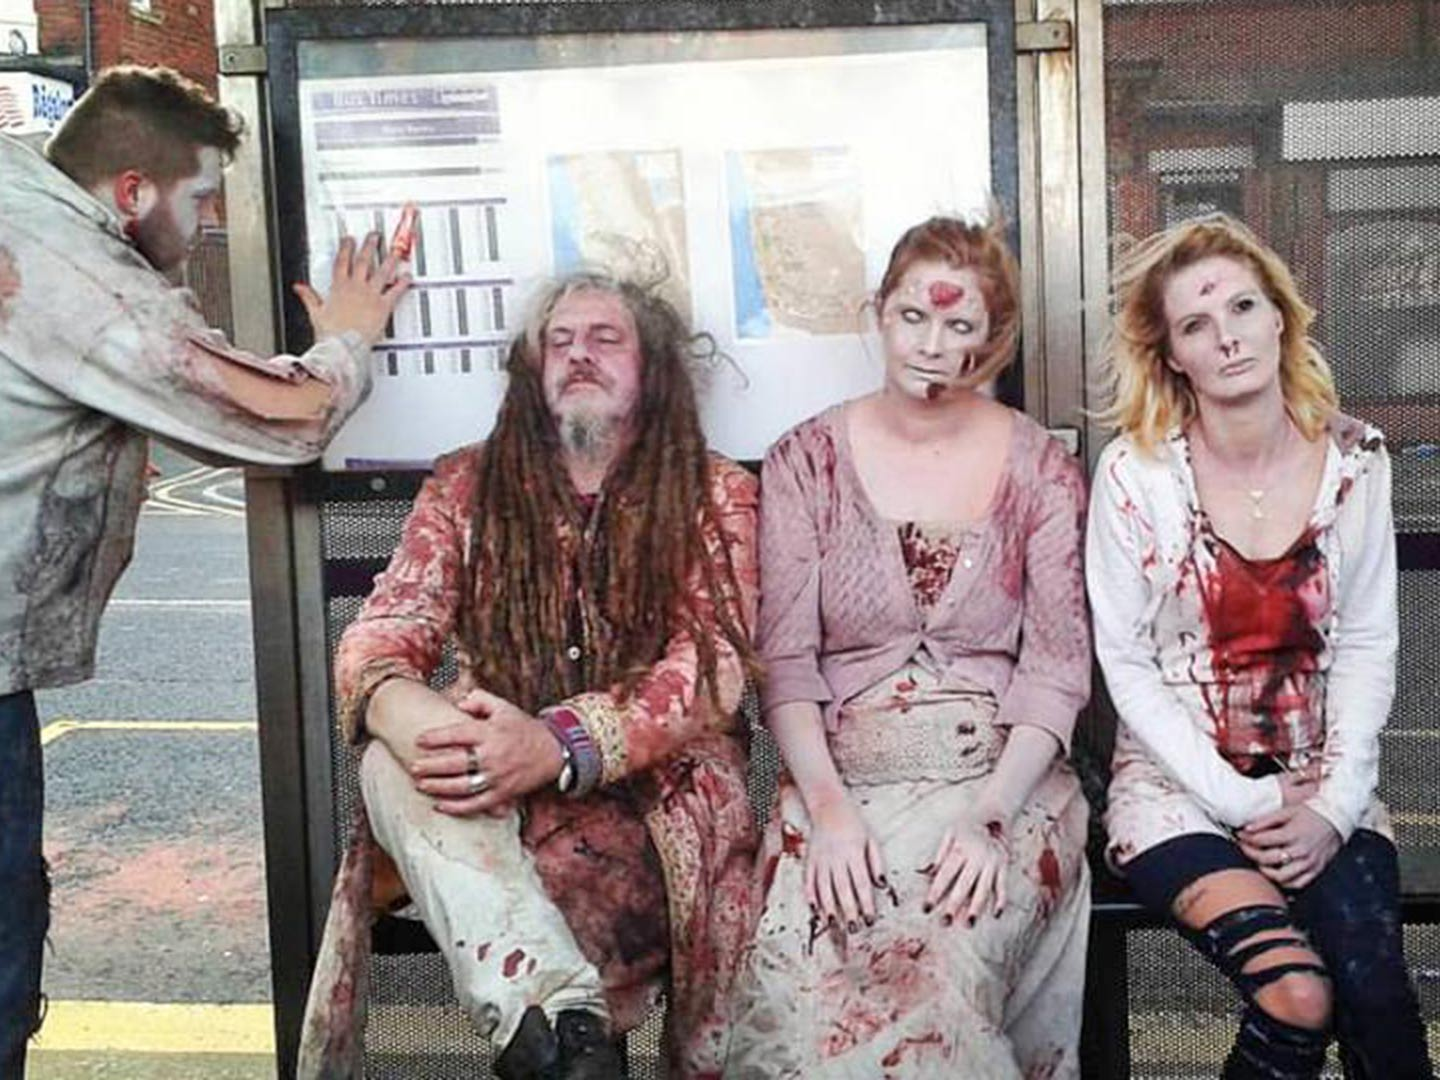 Zombies at the bus stop